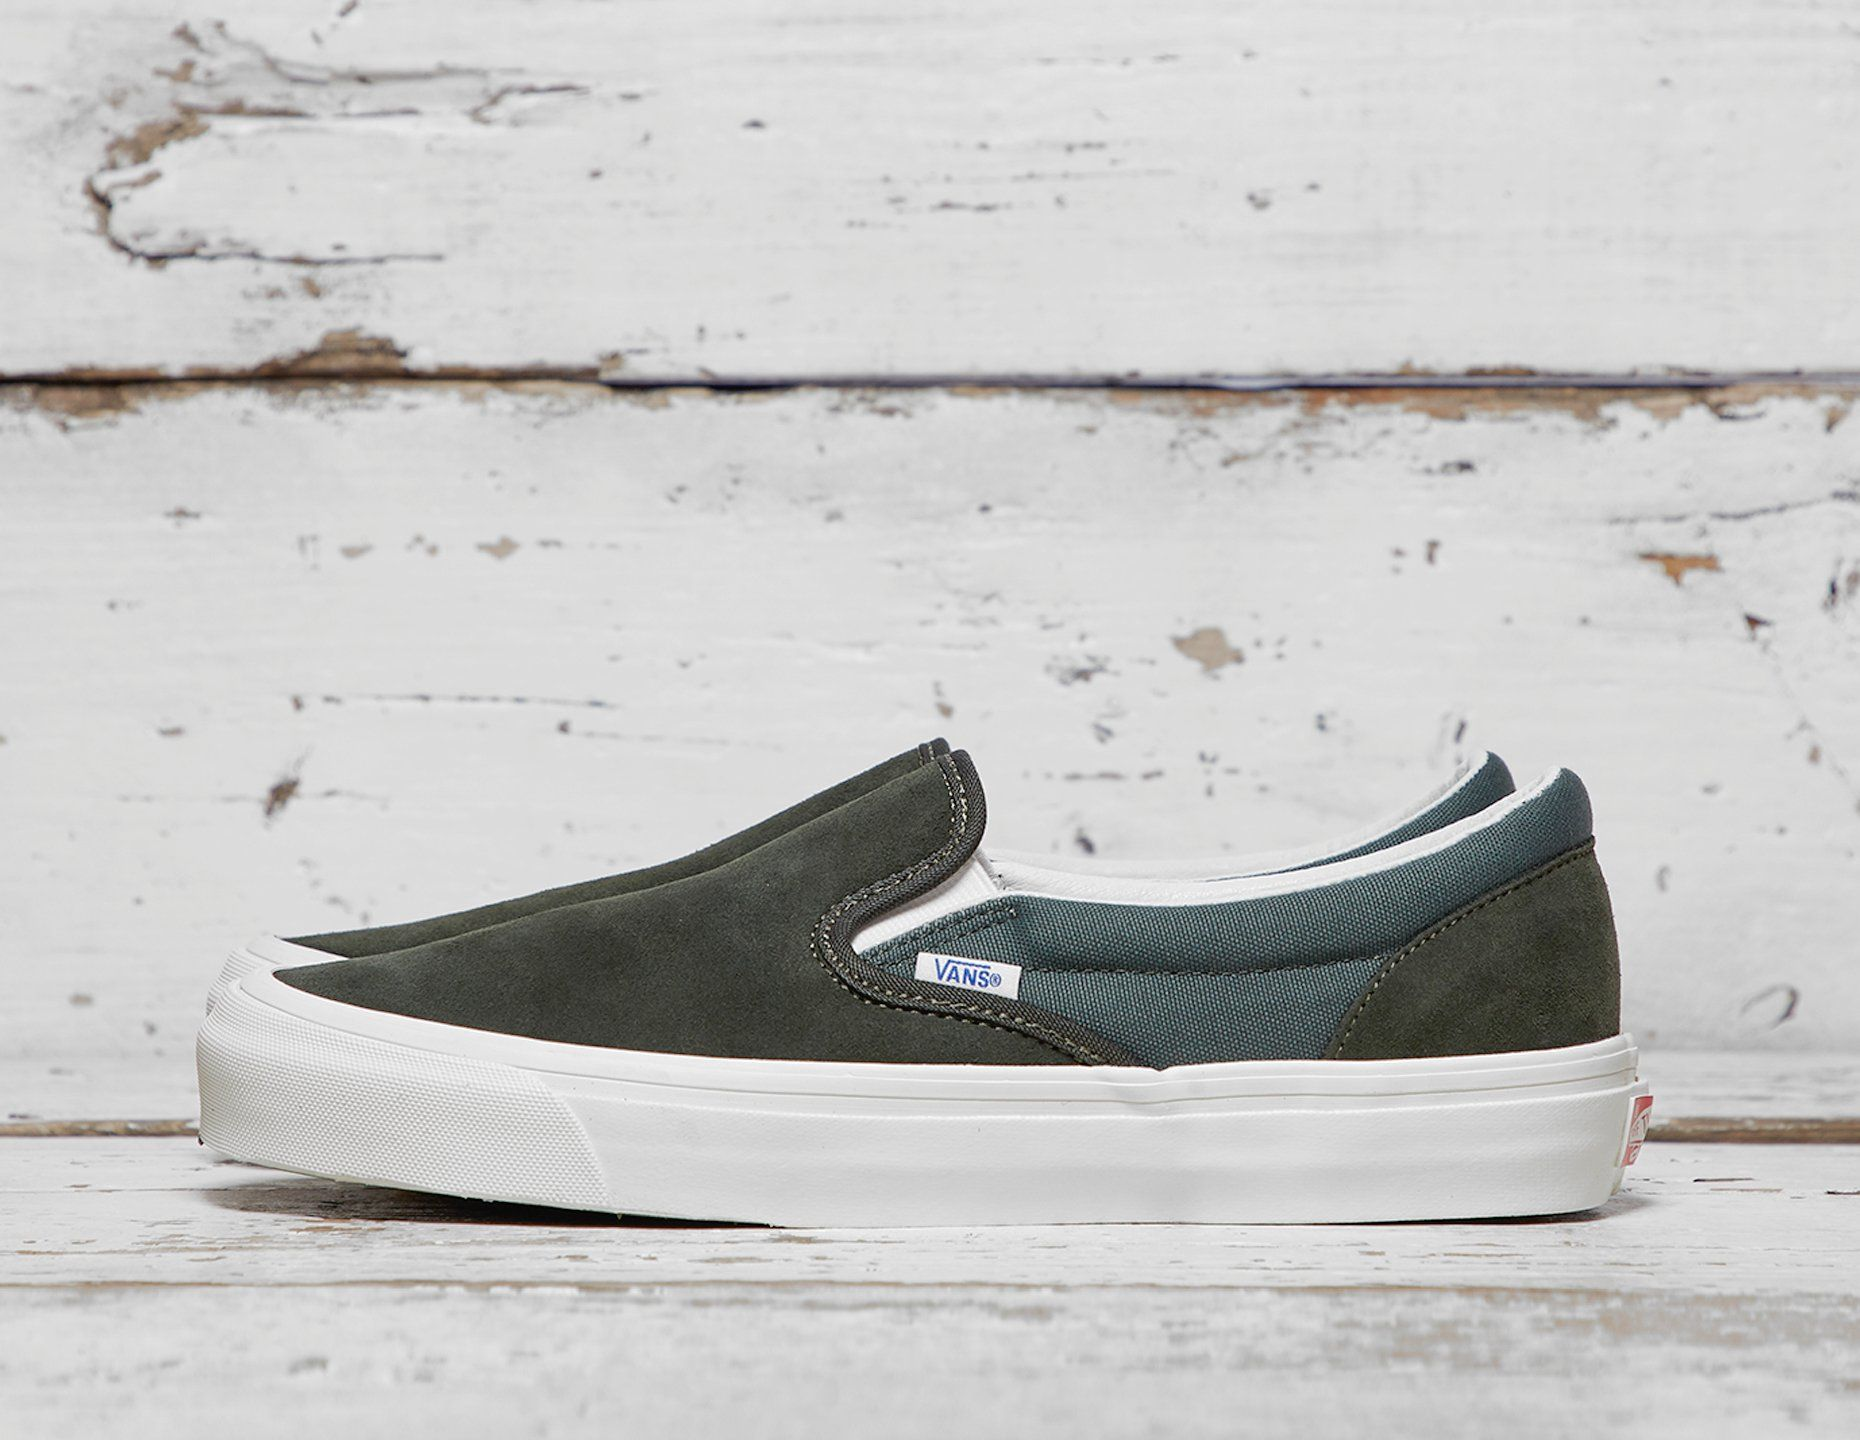 Vault by Vans OG Slip-On LX